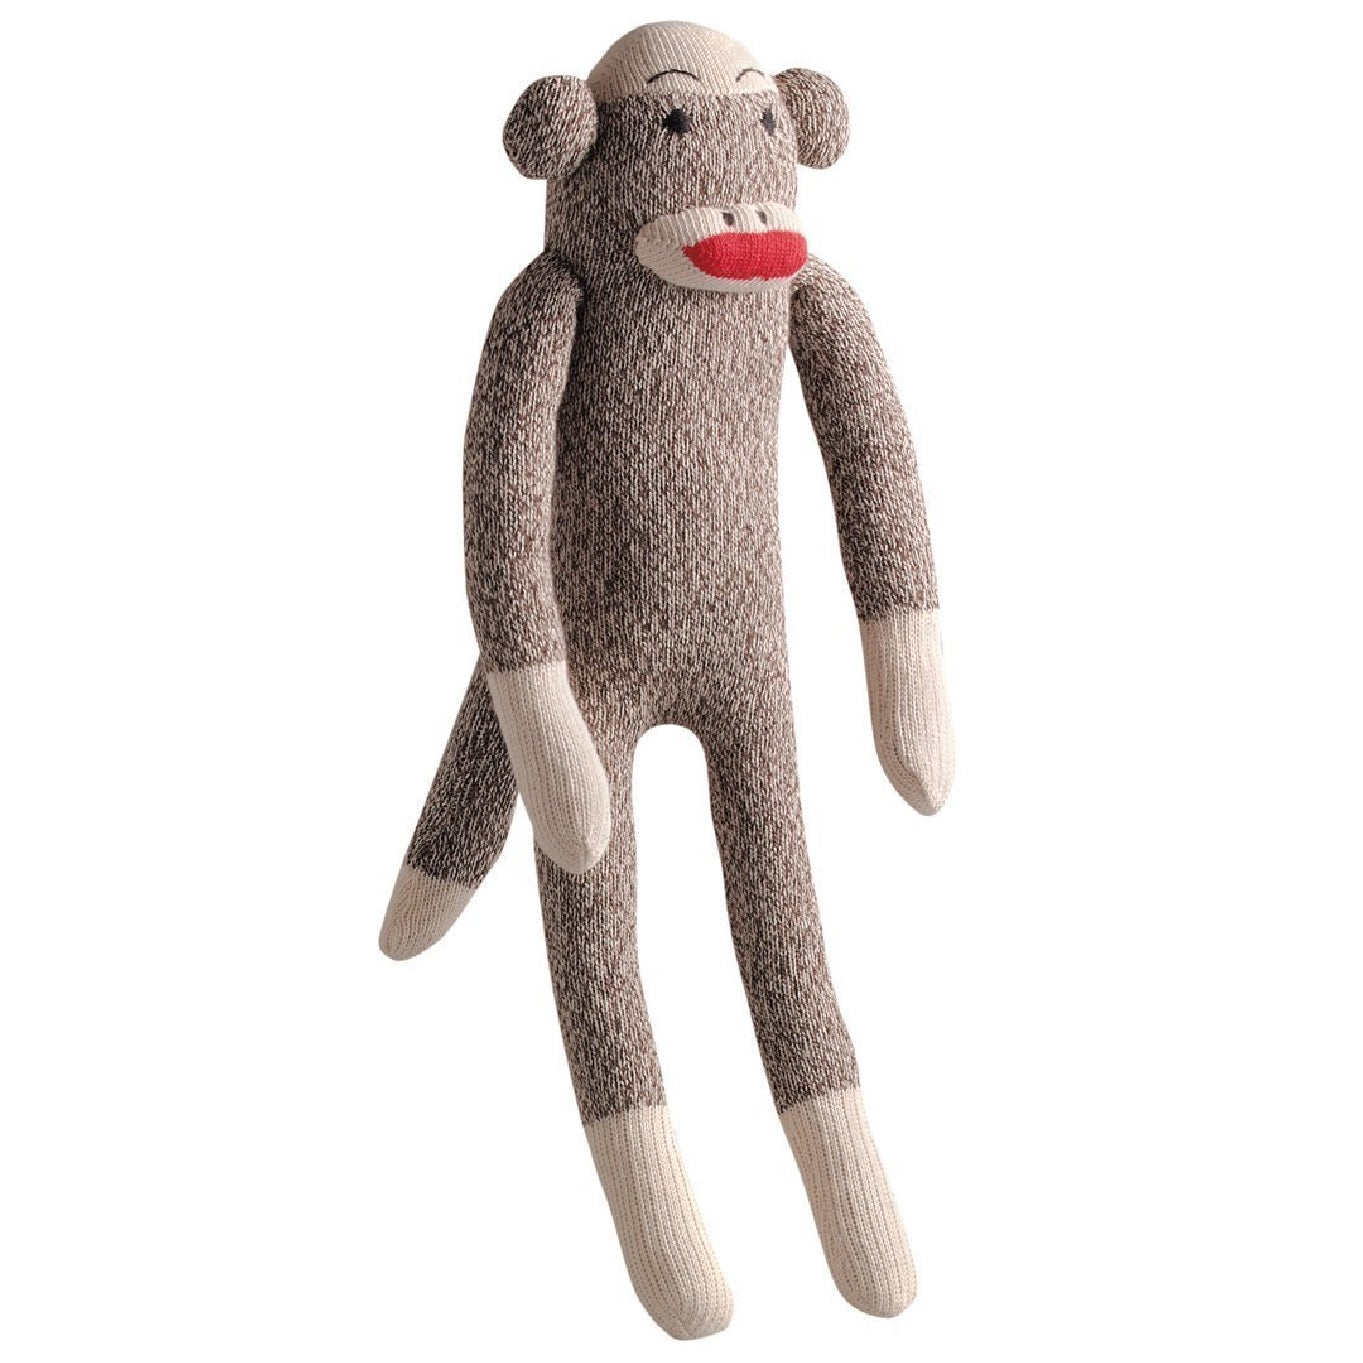 Multipet Sock Pals Monkey 10-inches (7-84369-48084-9), Brown